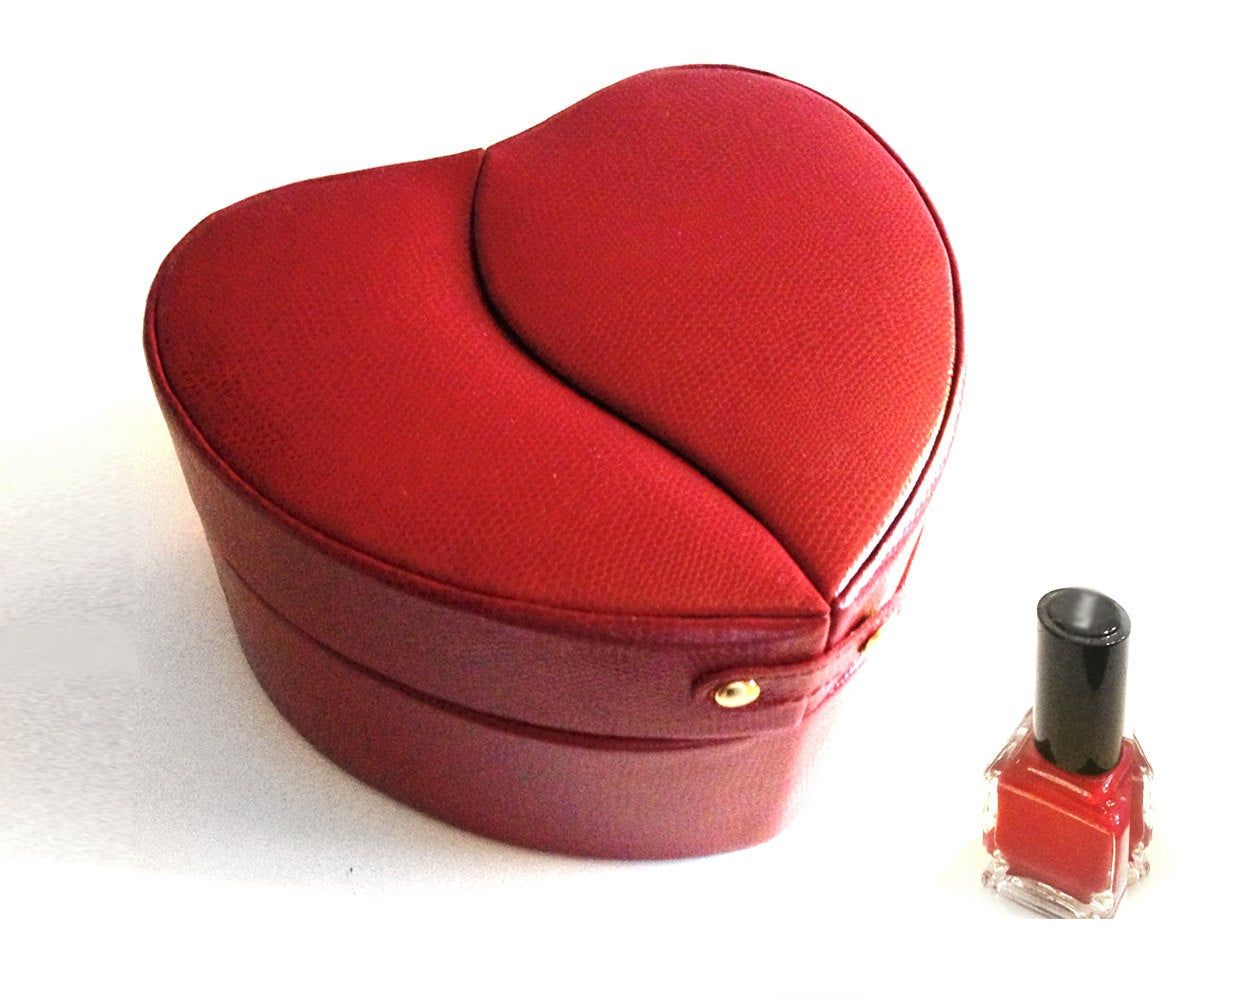 Heart Jewelry Box in Candy Apple Red - Genuine Leather